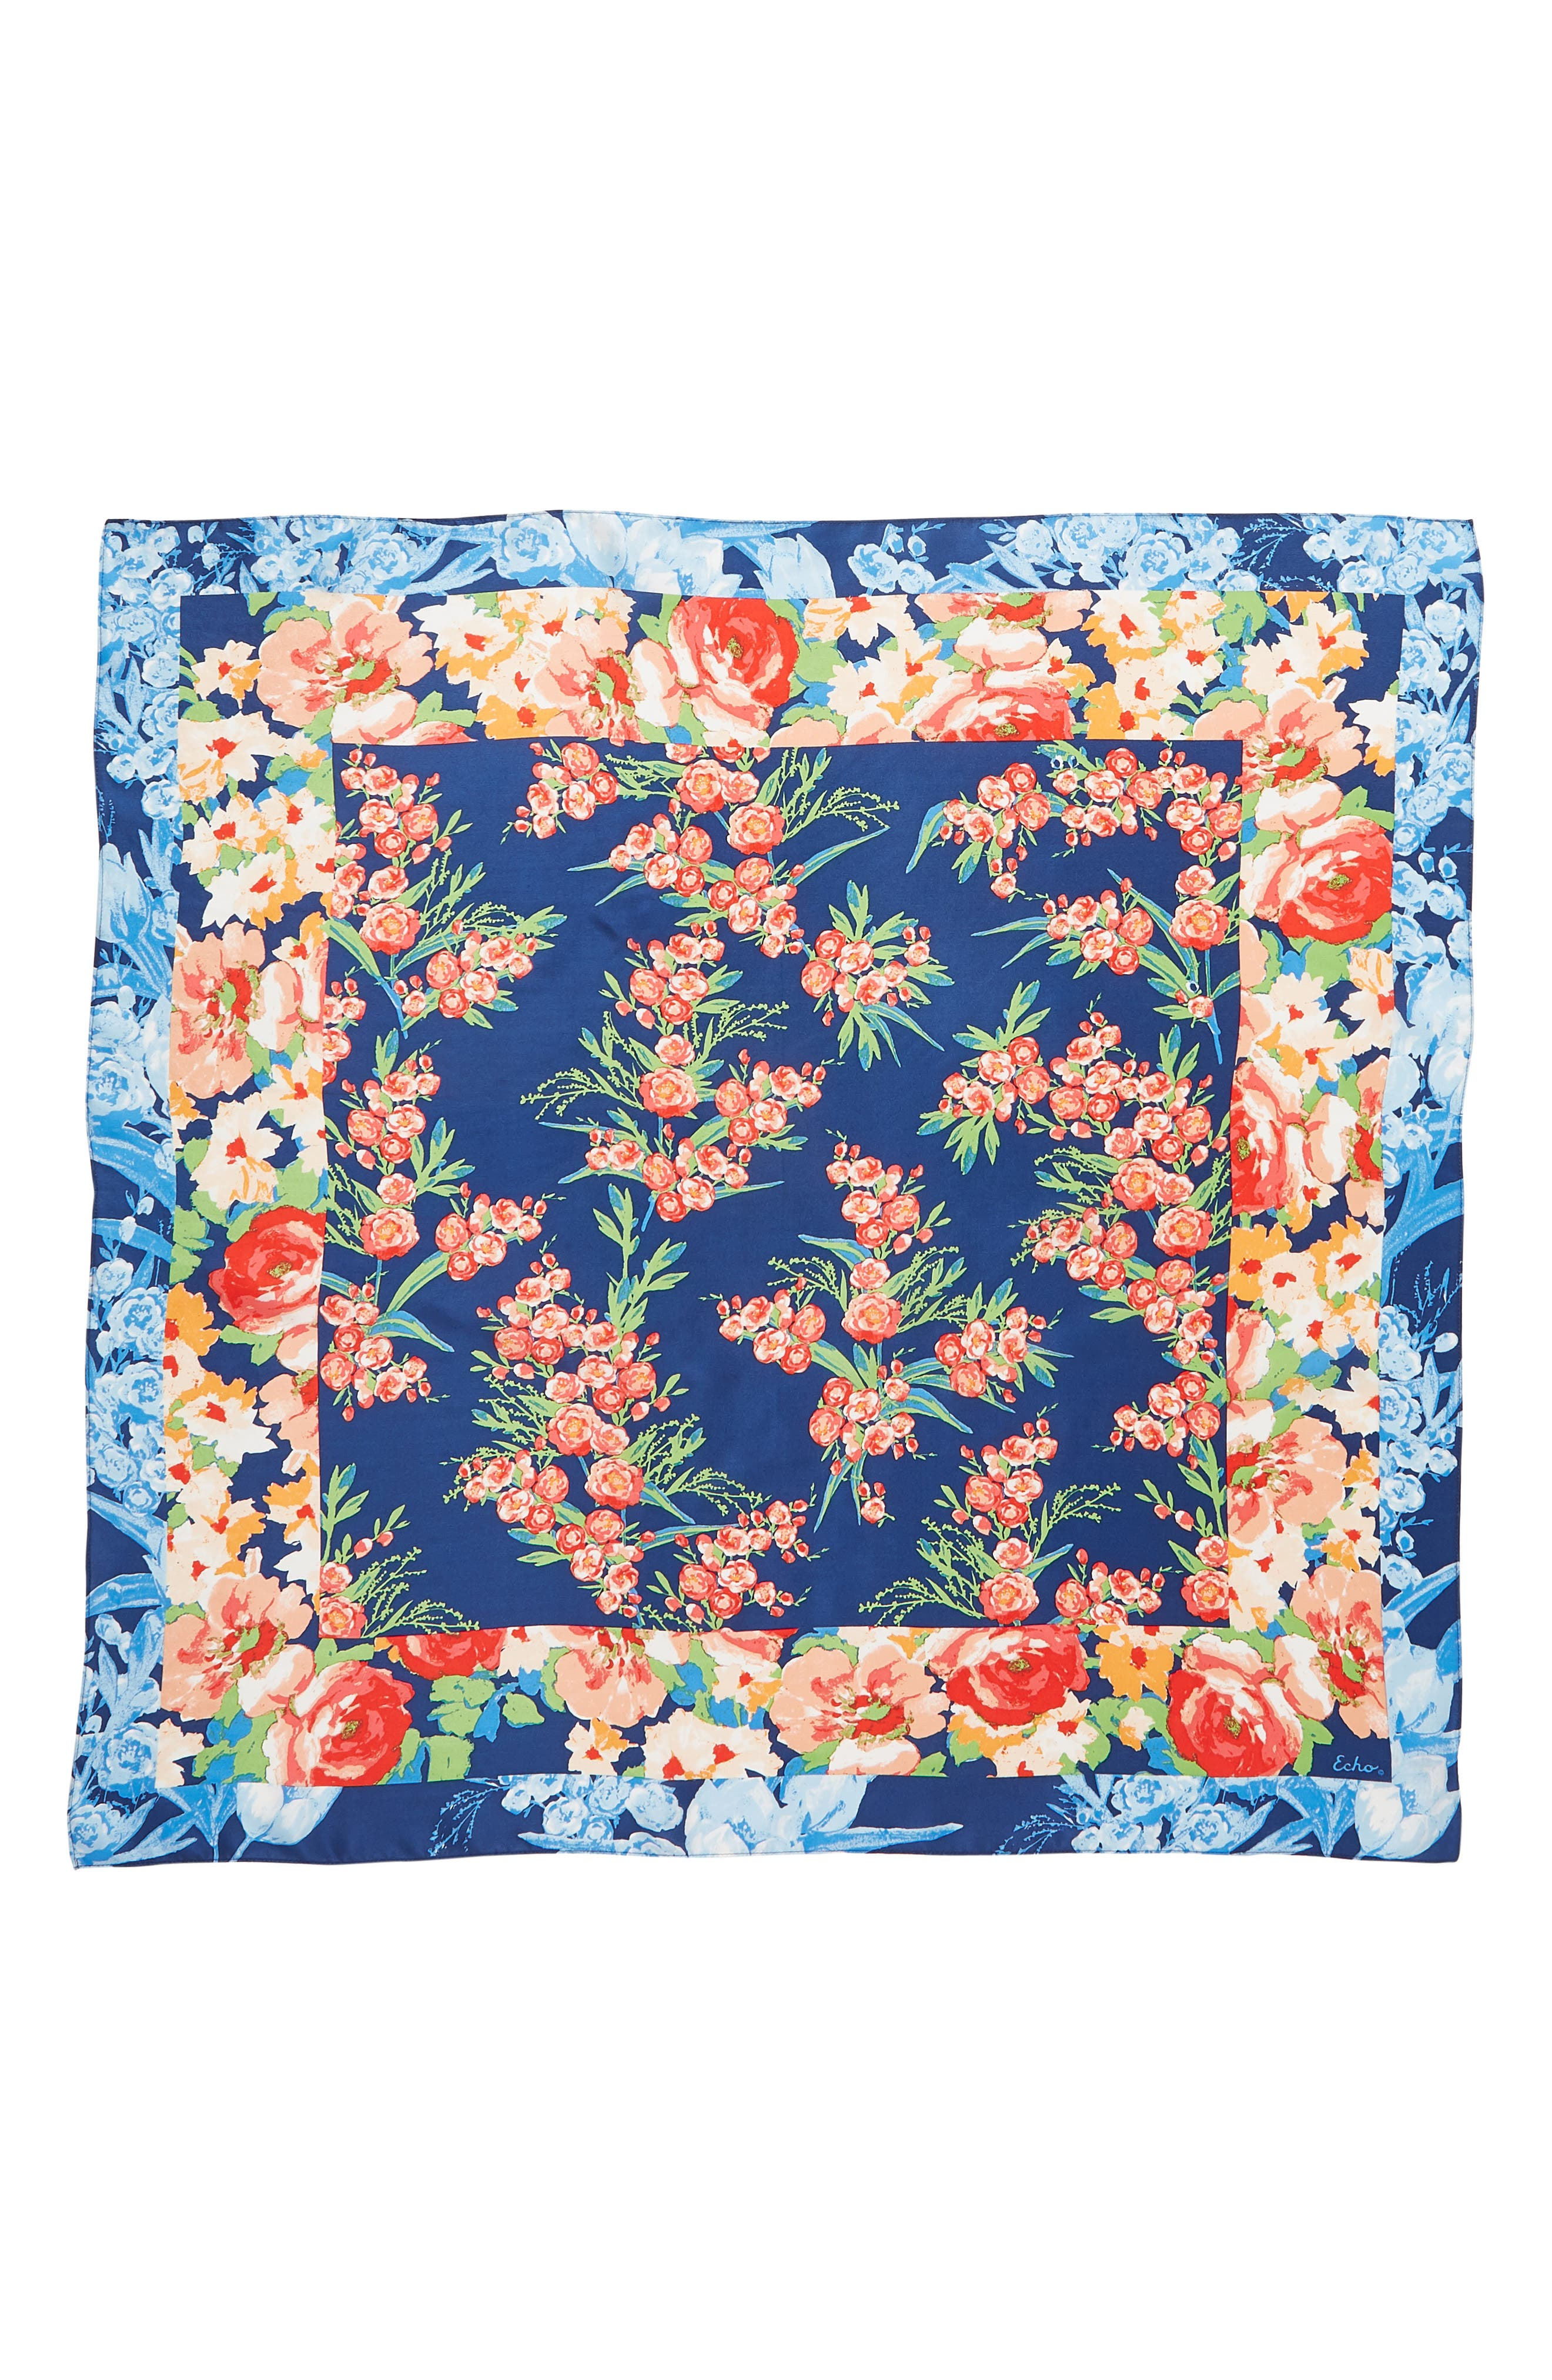 Airlie Beach Floral Silk Square Scarf,                             Alternate thumbnail 3, color,                             NAVY